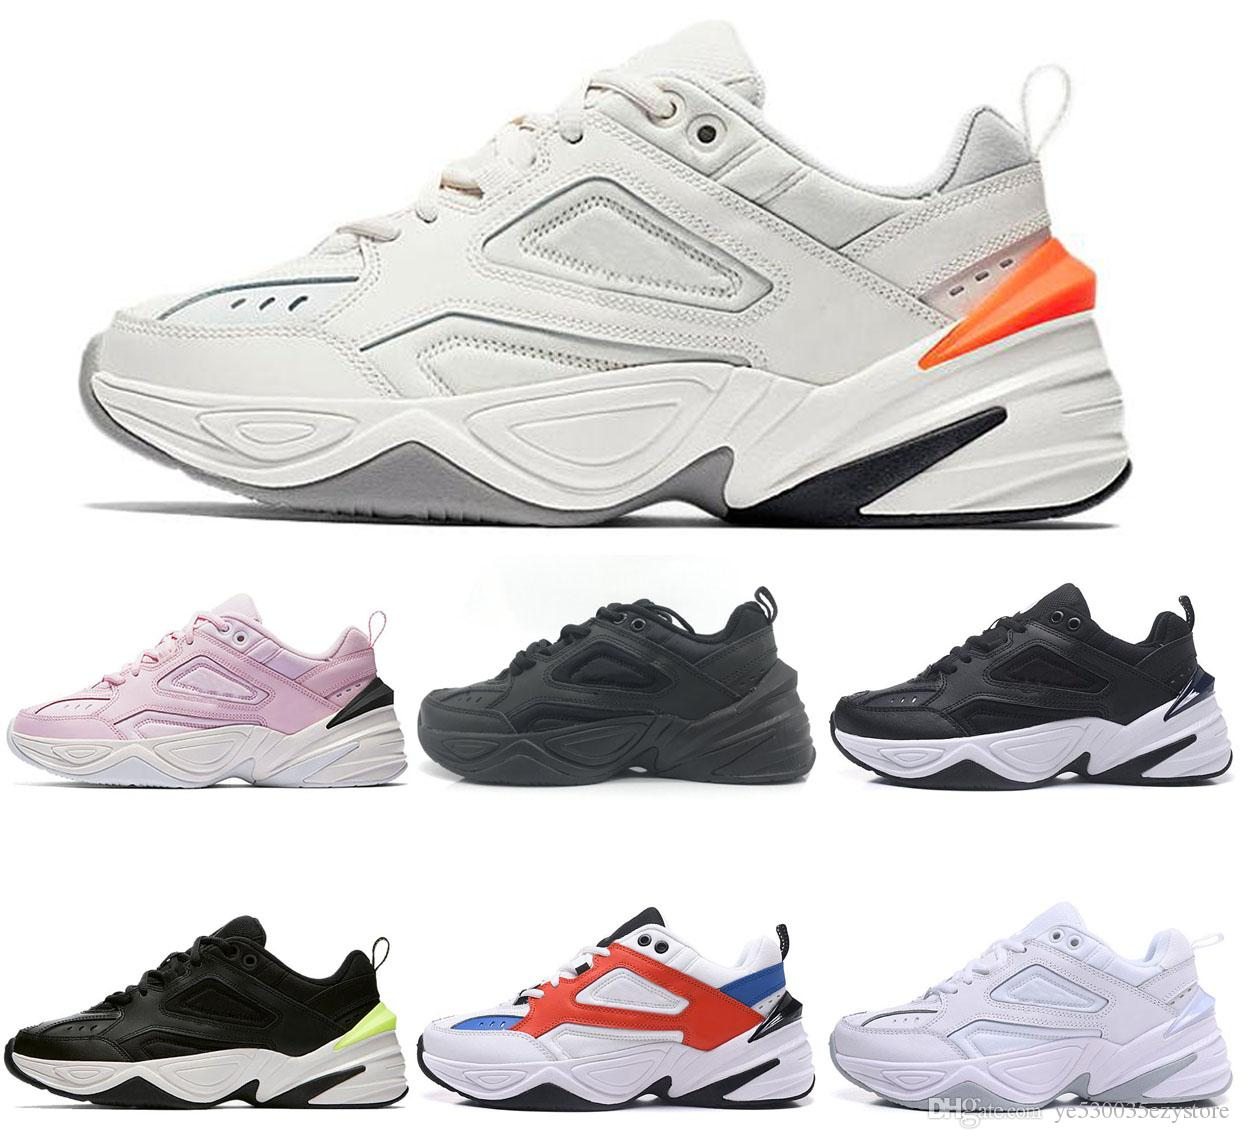 size 40 026c7 cfc0f Compre Nike Air Monarch M2K Tekno Retro Trend Men s And Women s Outdoor  Sports And Leisure Running Shoes A  129.65 Del Ye530035ezystore   DHgate.Com